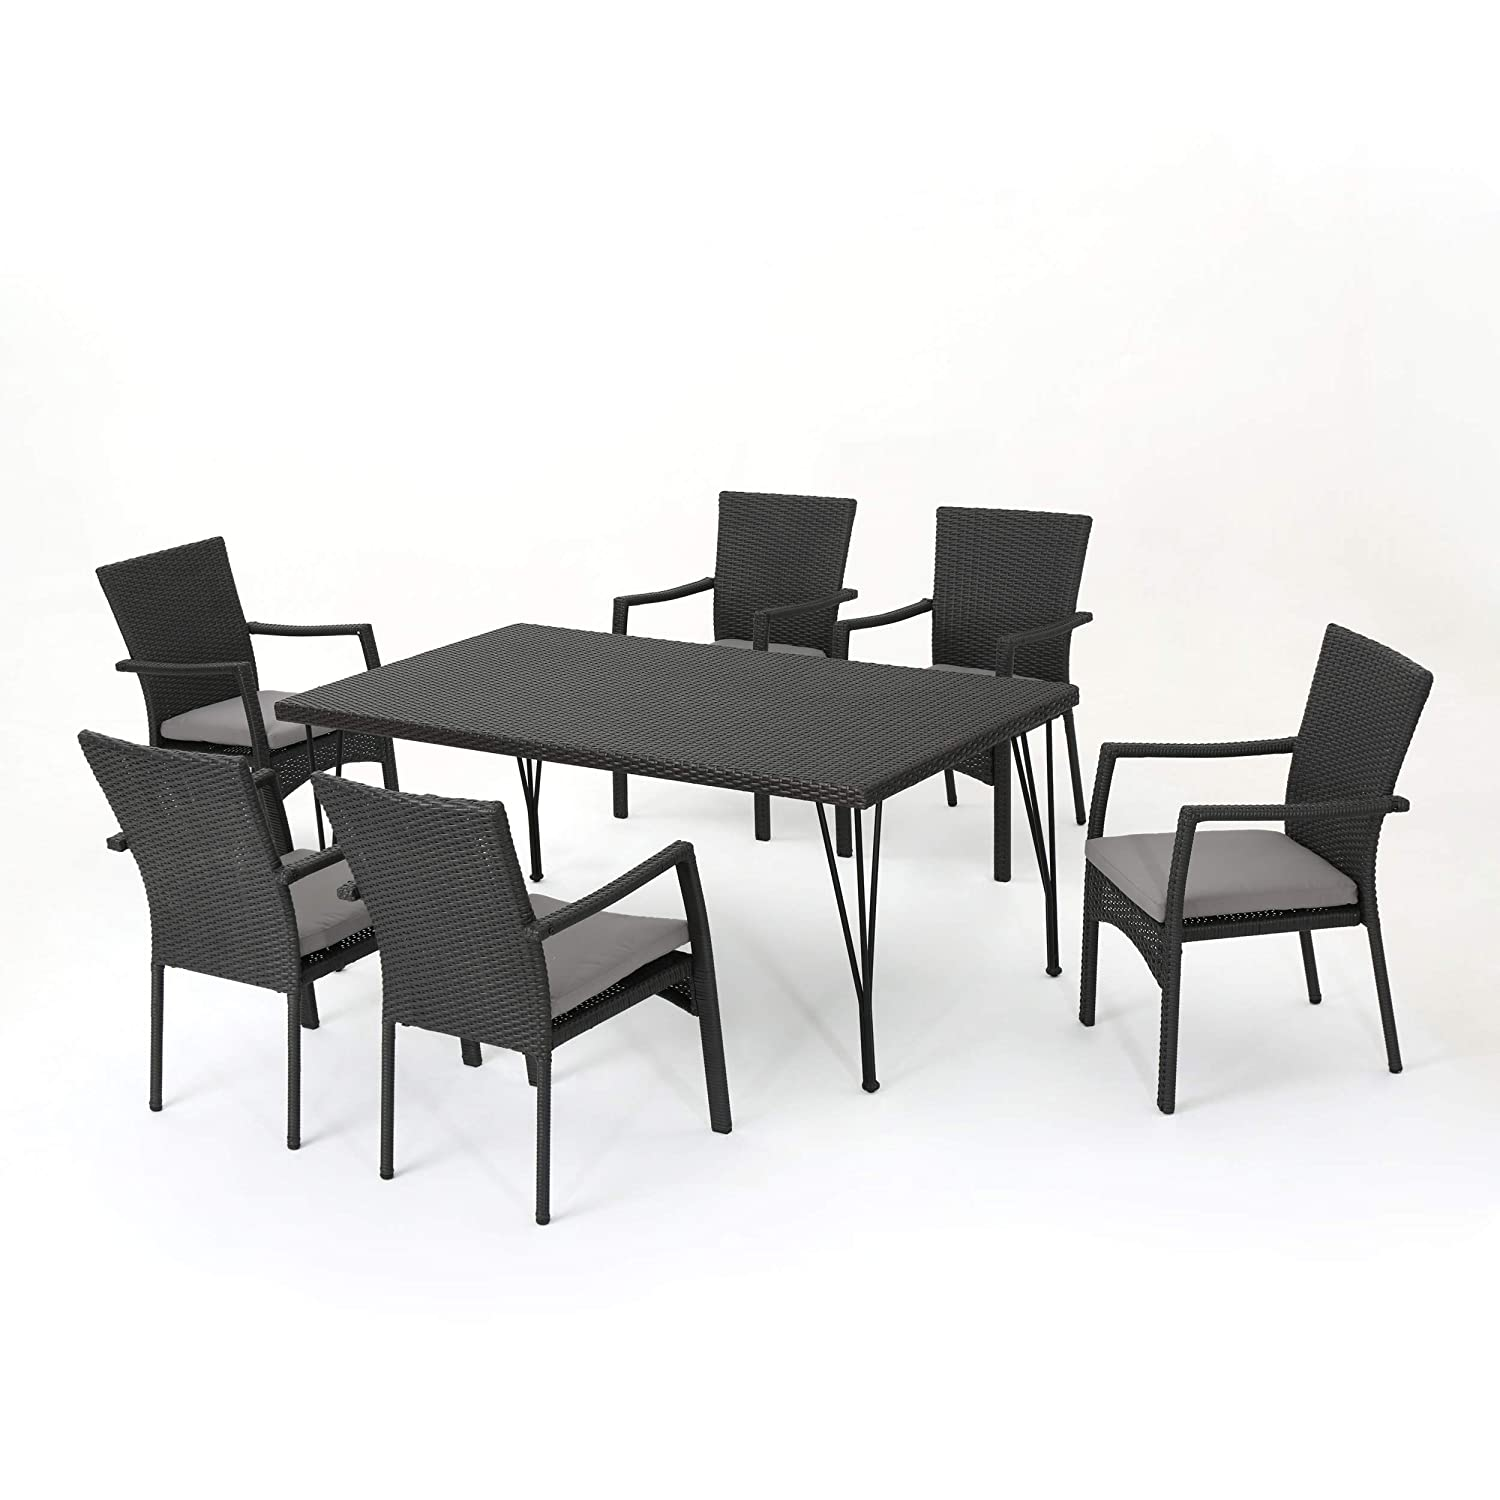 Christopher Knight Home Lula Outdoor 7 Piece Grey Wicker Rectangular Dining Set with Grey Water Resistant Cushions